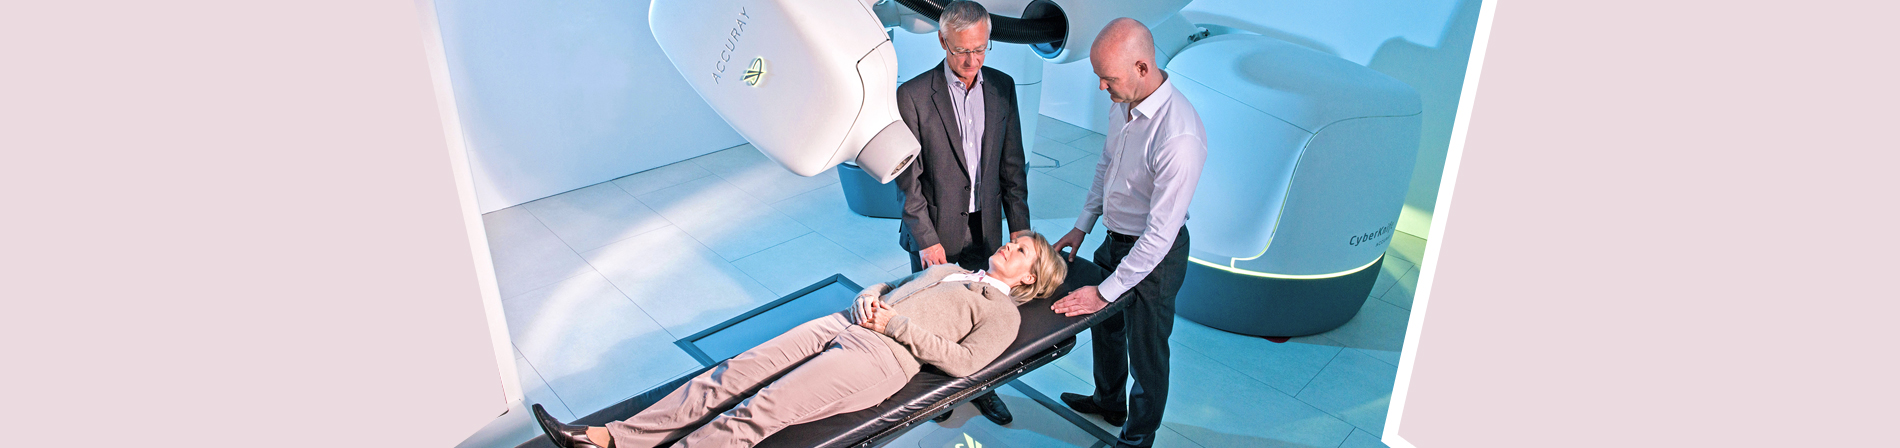 How Does Cyberknife Treat Lung Cancer Medicaltravel